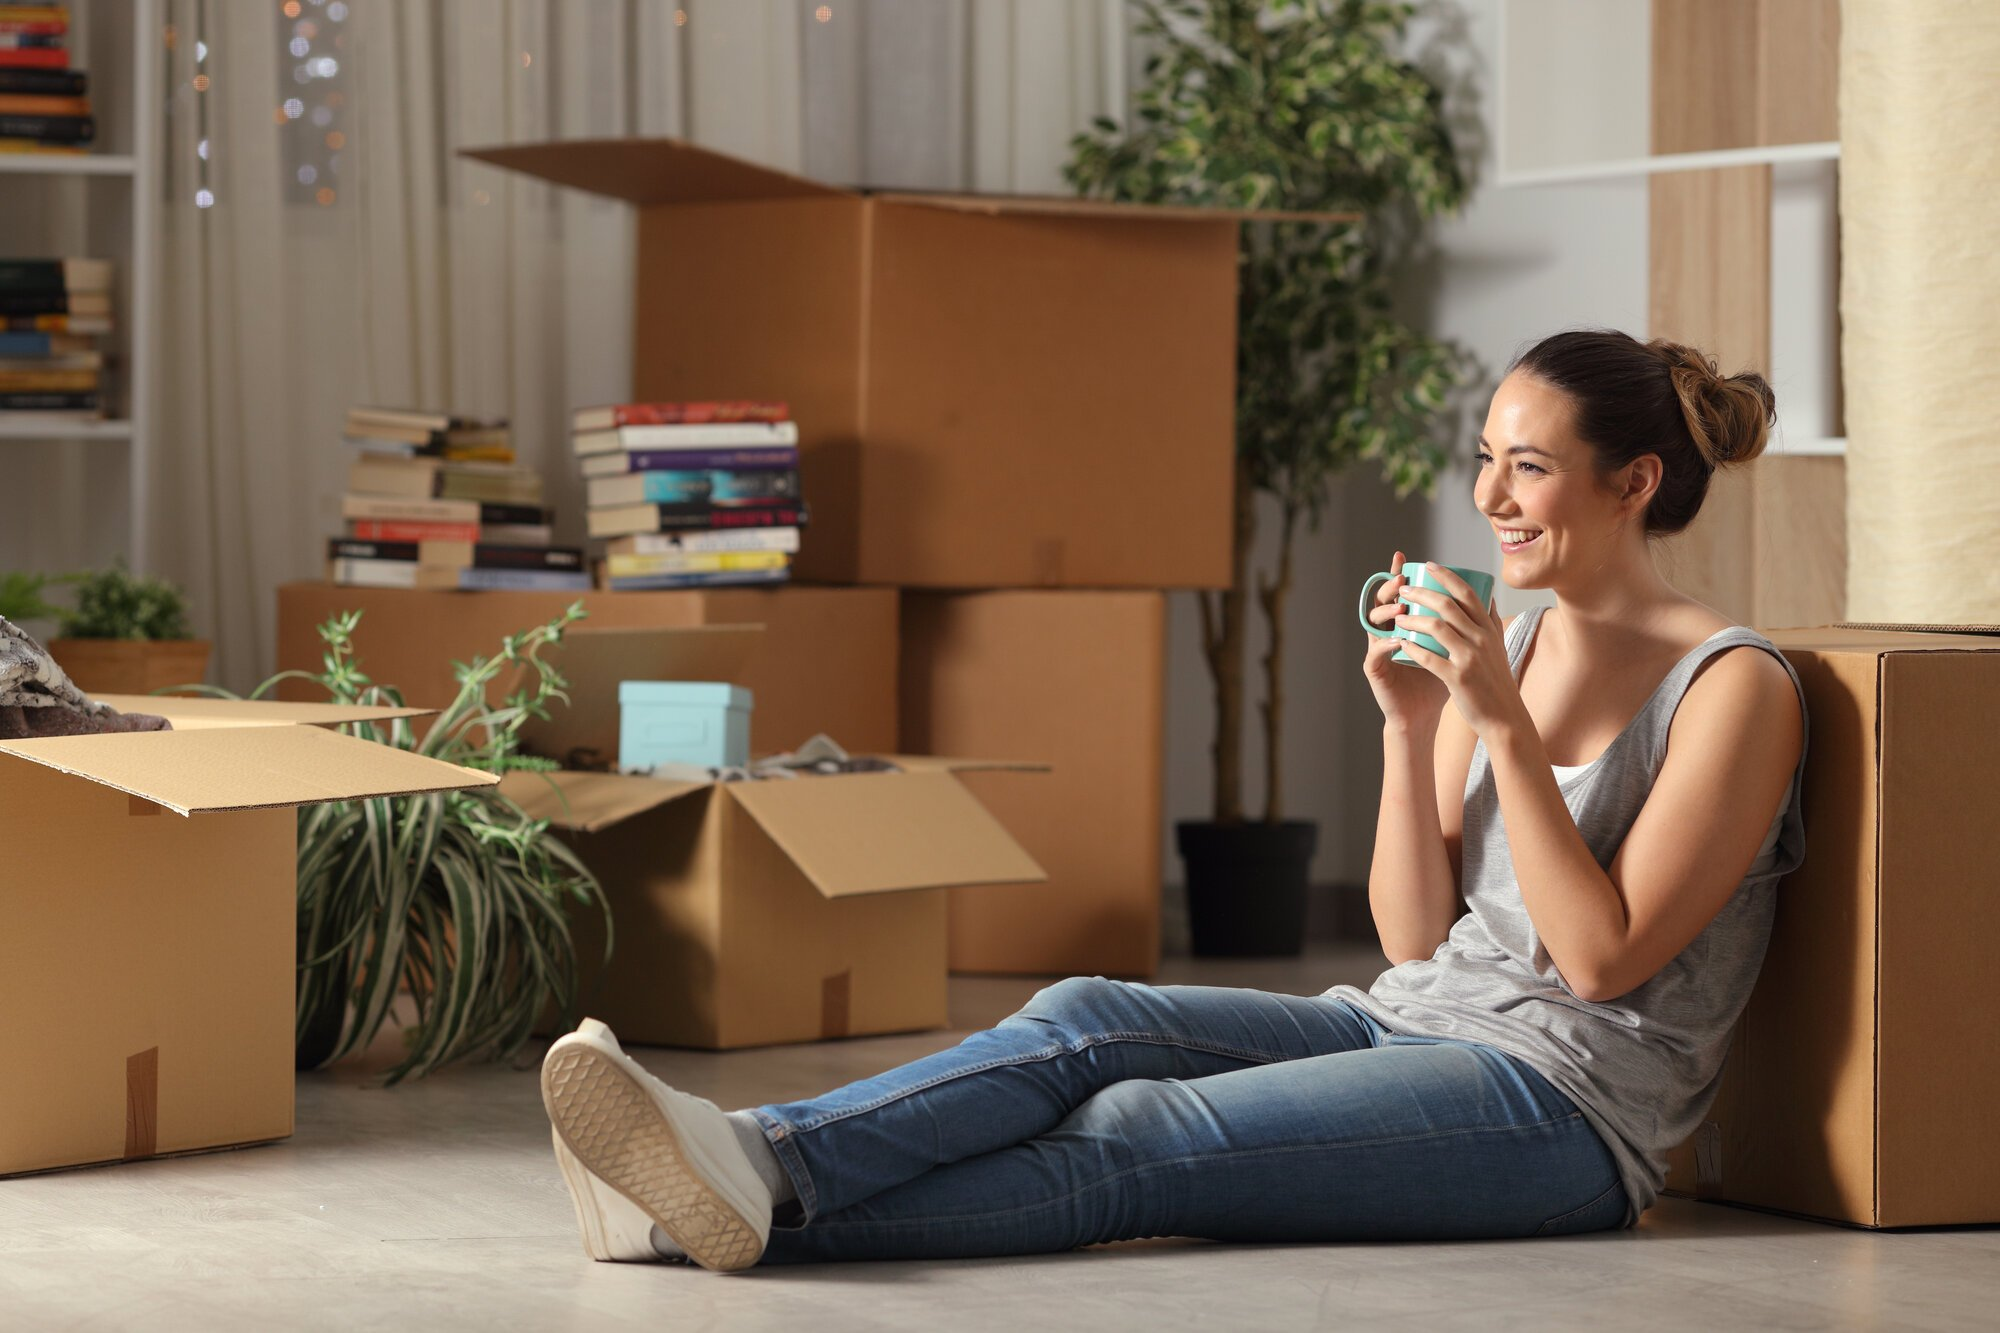 Happy,Tenant,Resting,Drinking,Coffee,Moving,Home,Sitting,On,The